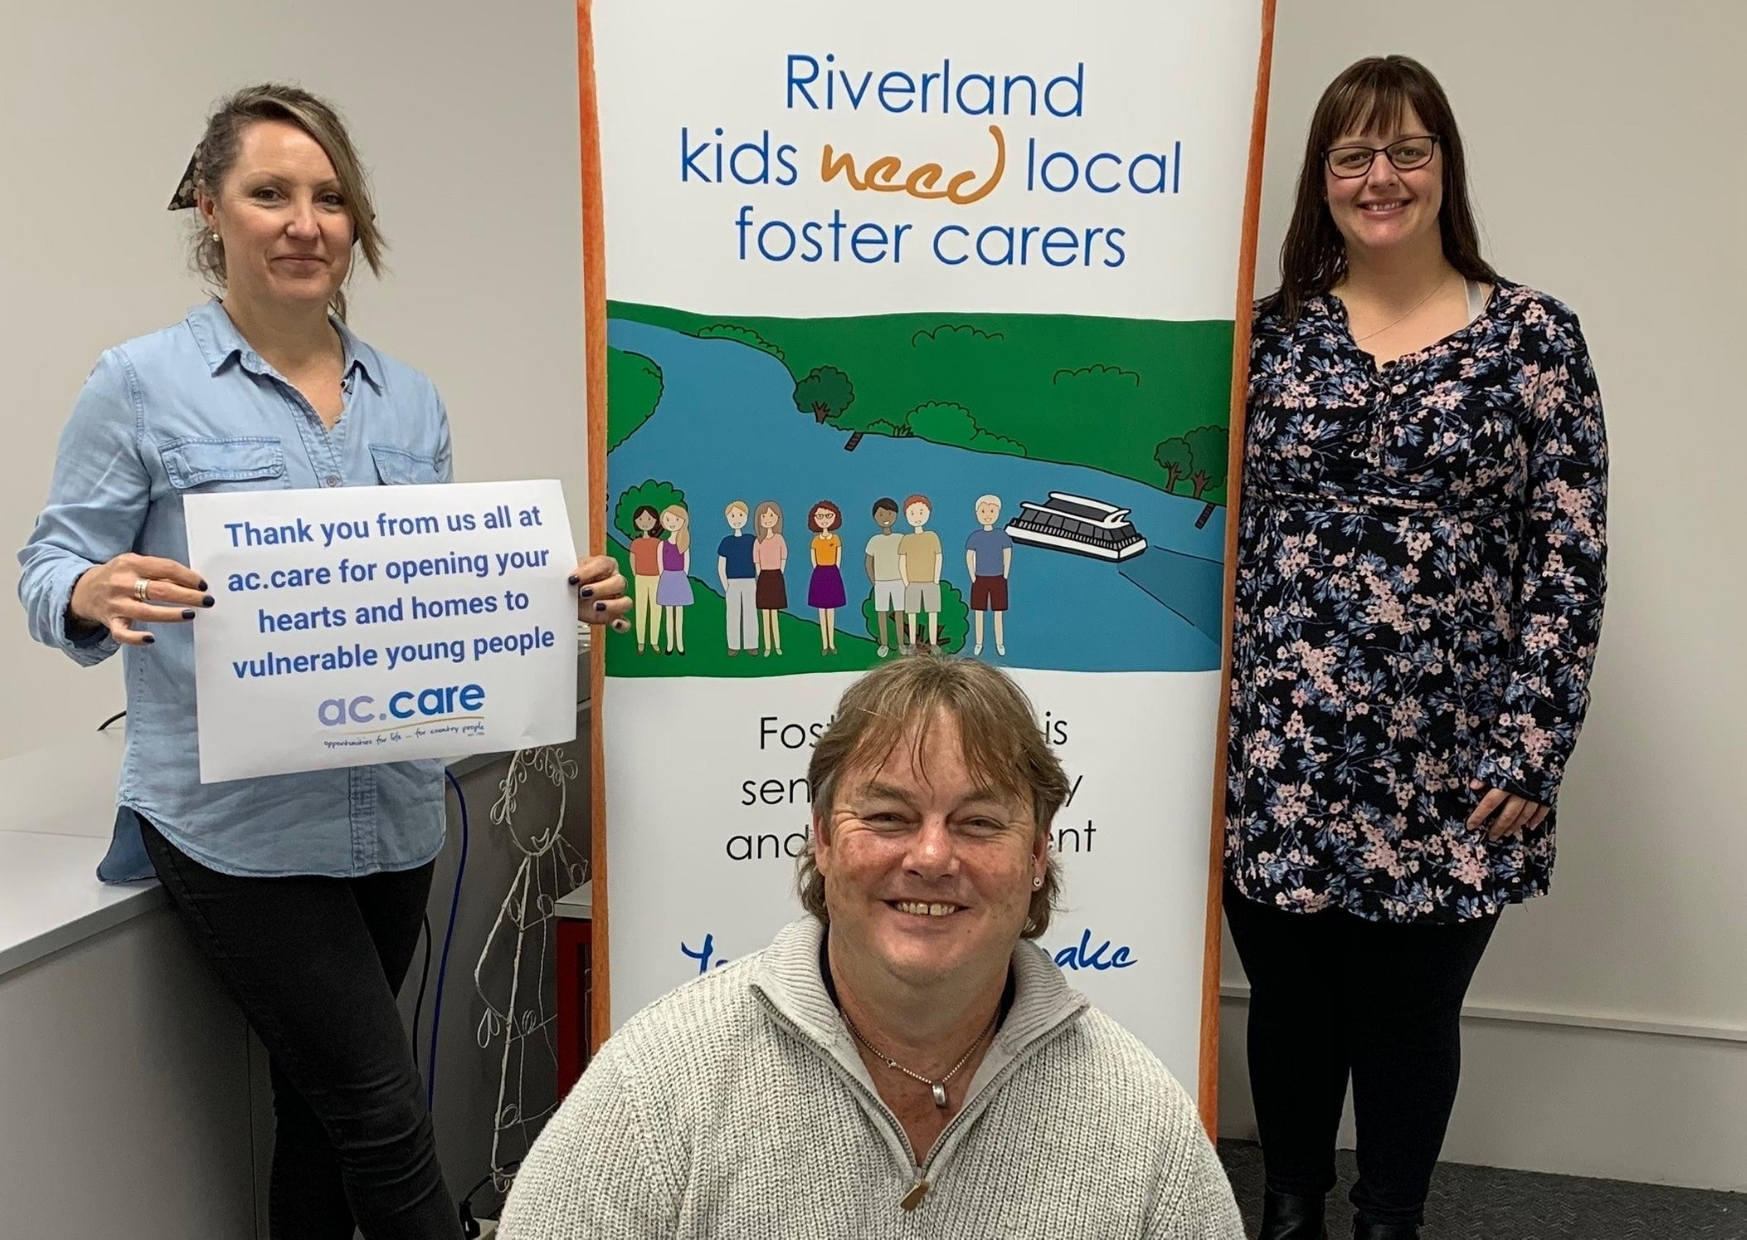 ac.care Riverland team Carers Week 2020 thank you CROPPED LANDSCAPE MEDIUM RESOLUTION